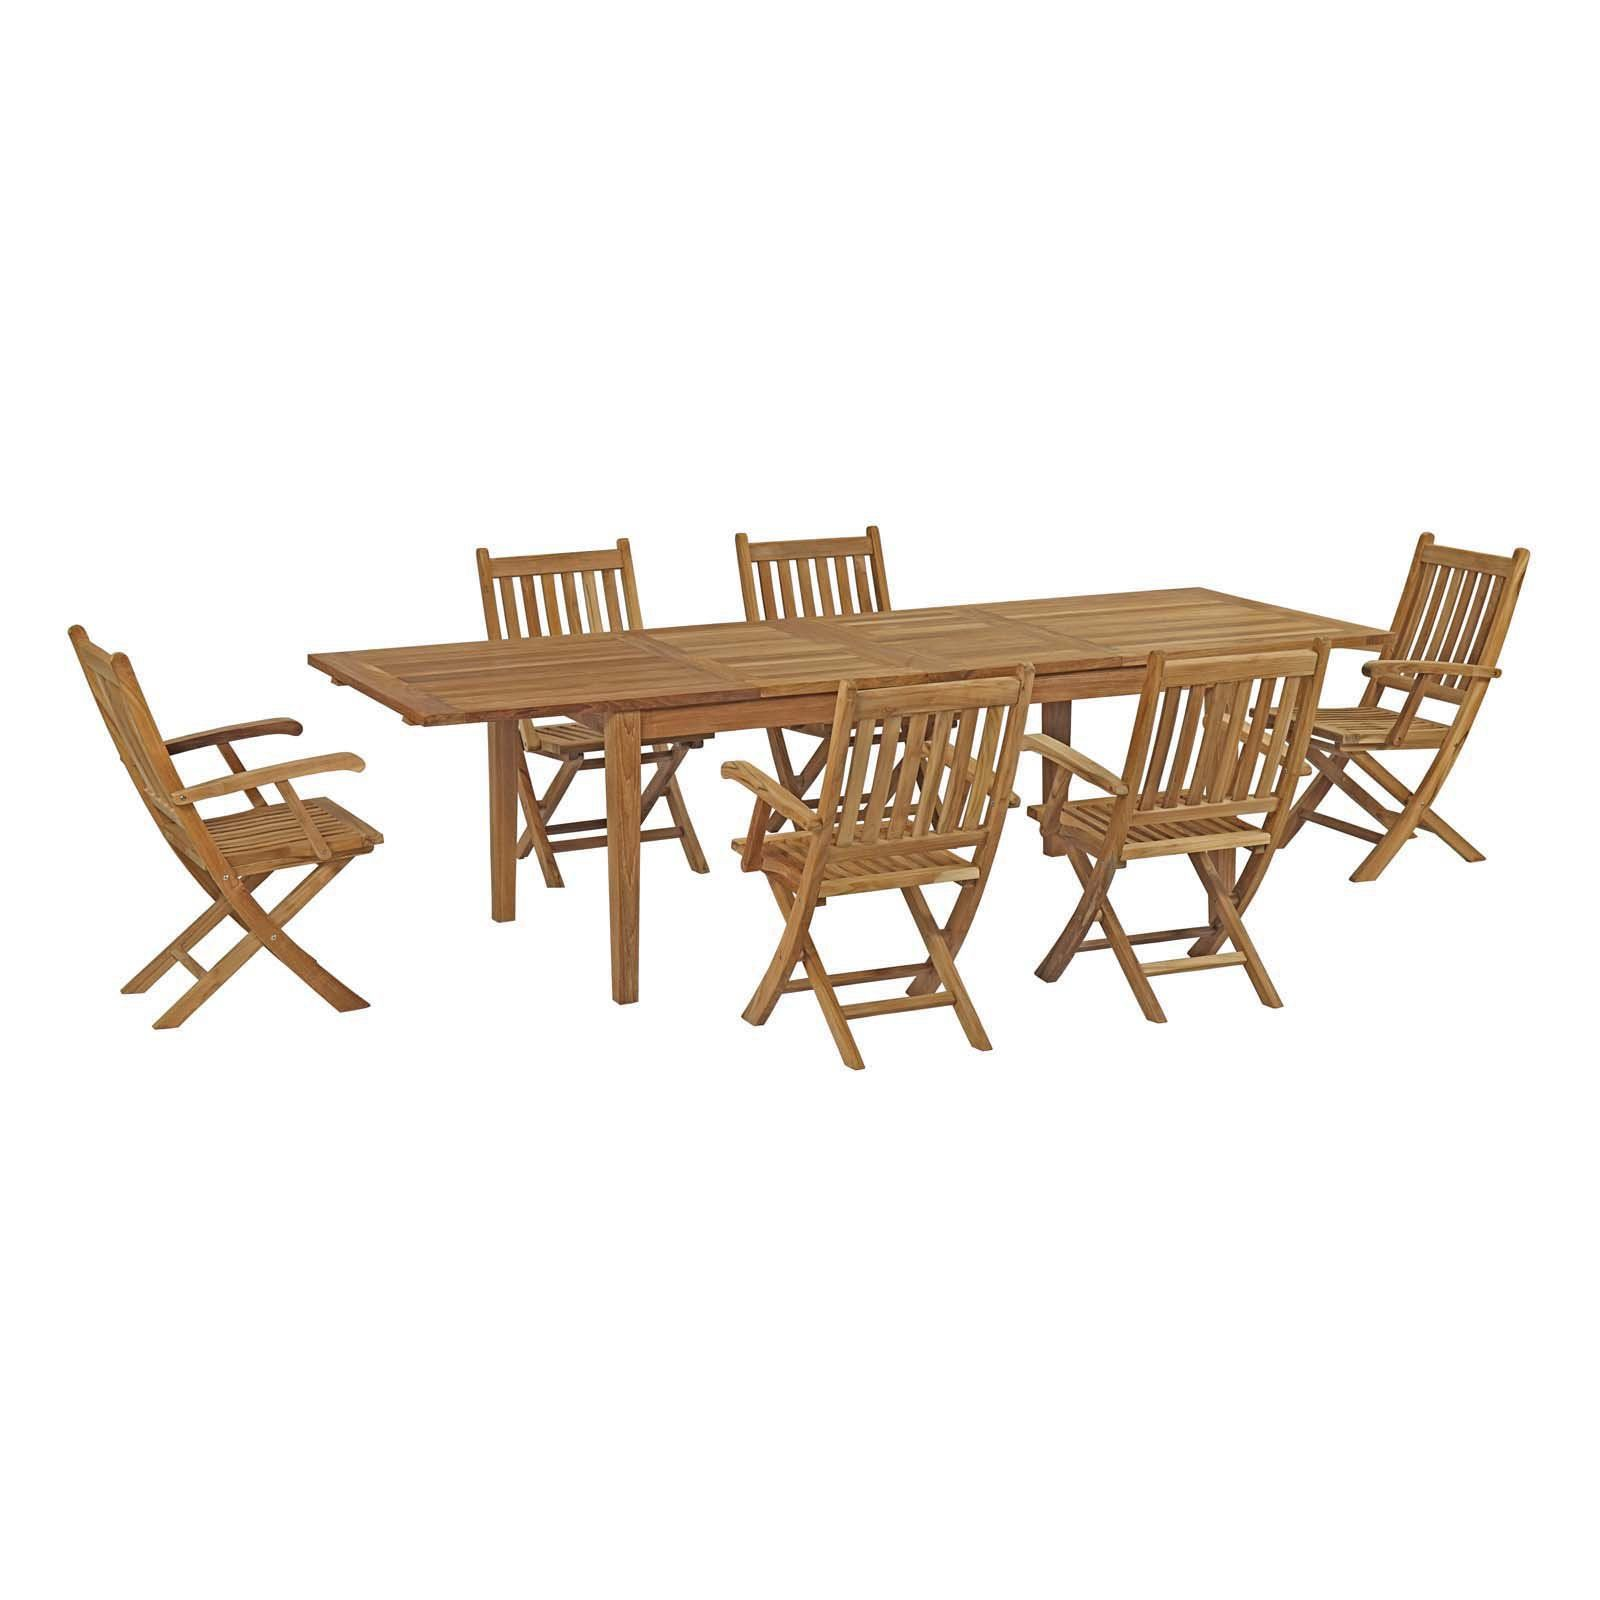 Vermont Extendable Garden Table And Chair Set: Outdoor Modway Marina Teak 7 Piece Patio Extendable Dining